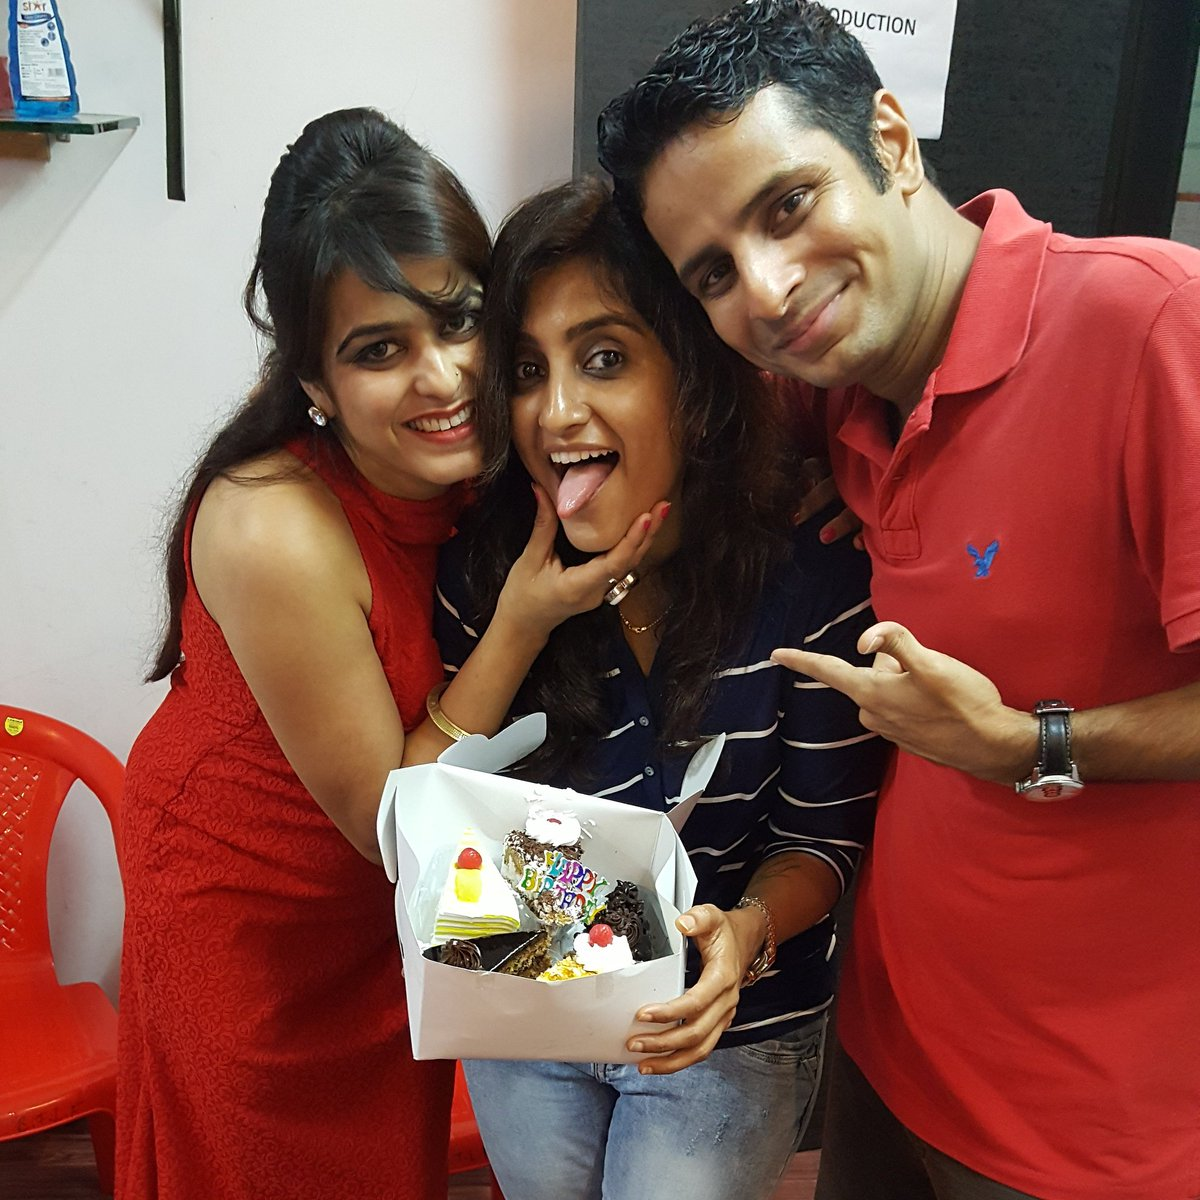 RT @shilpashinner: birthday time with @iamPreeto and @RawalOjas https://t.co/eucXfBq5ZR